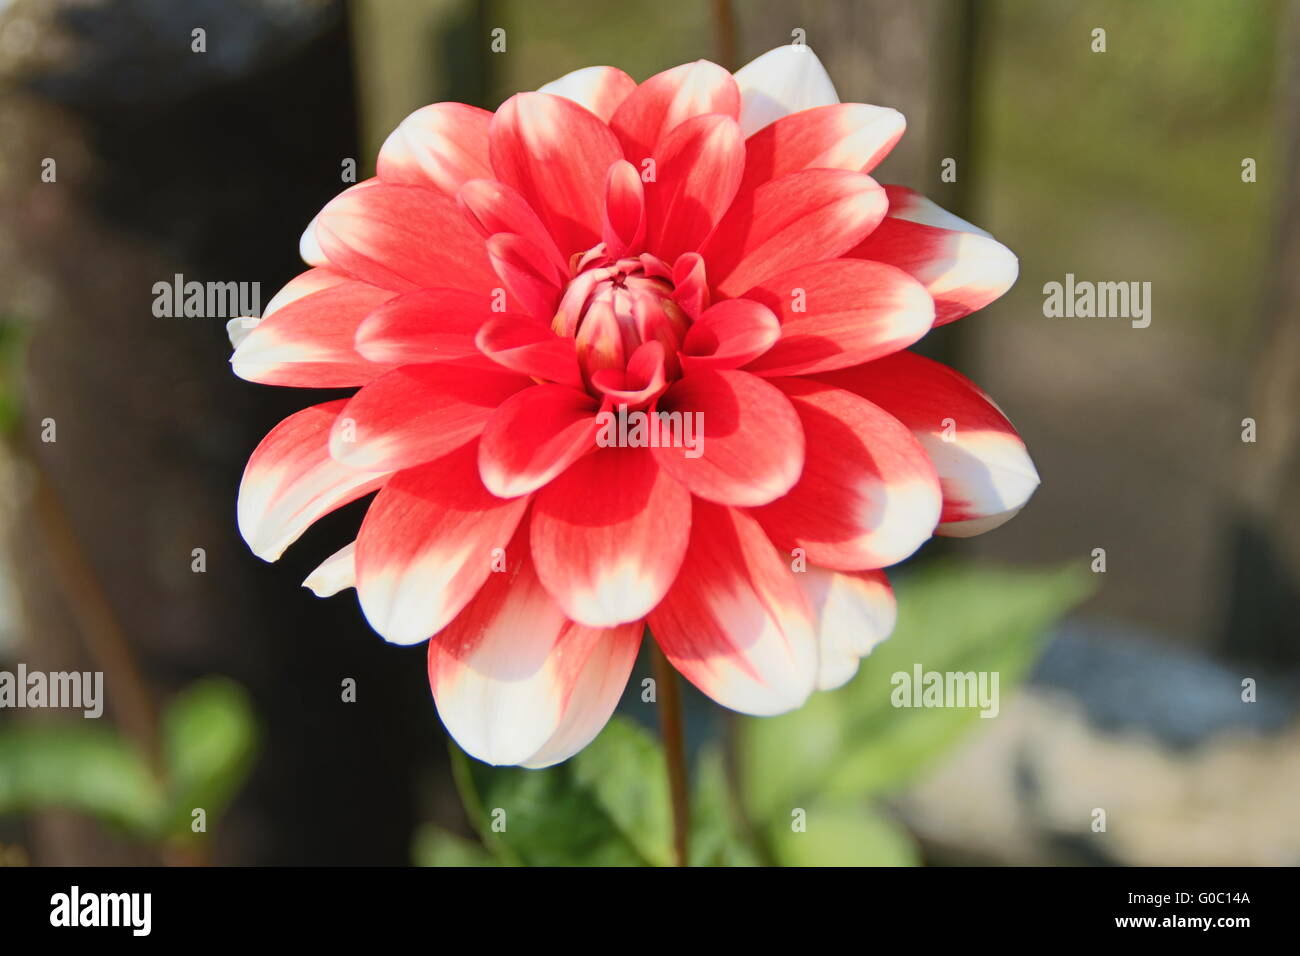 A red dahlia bloom - Stock Image